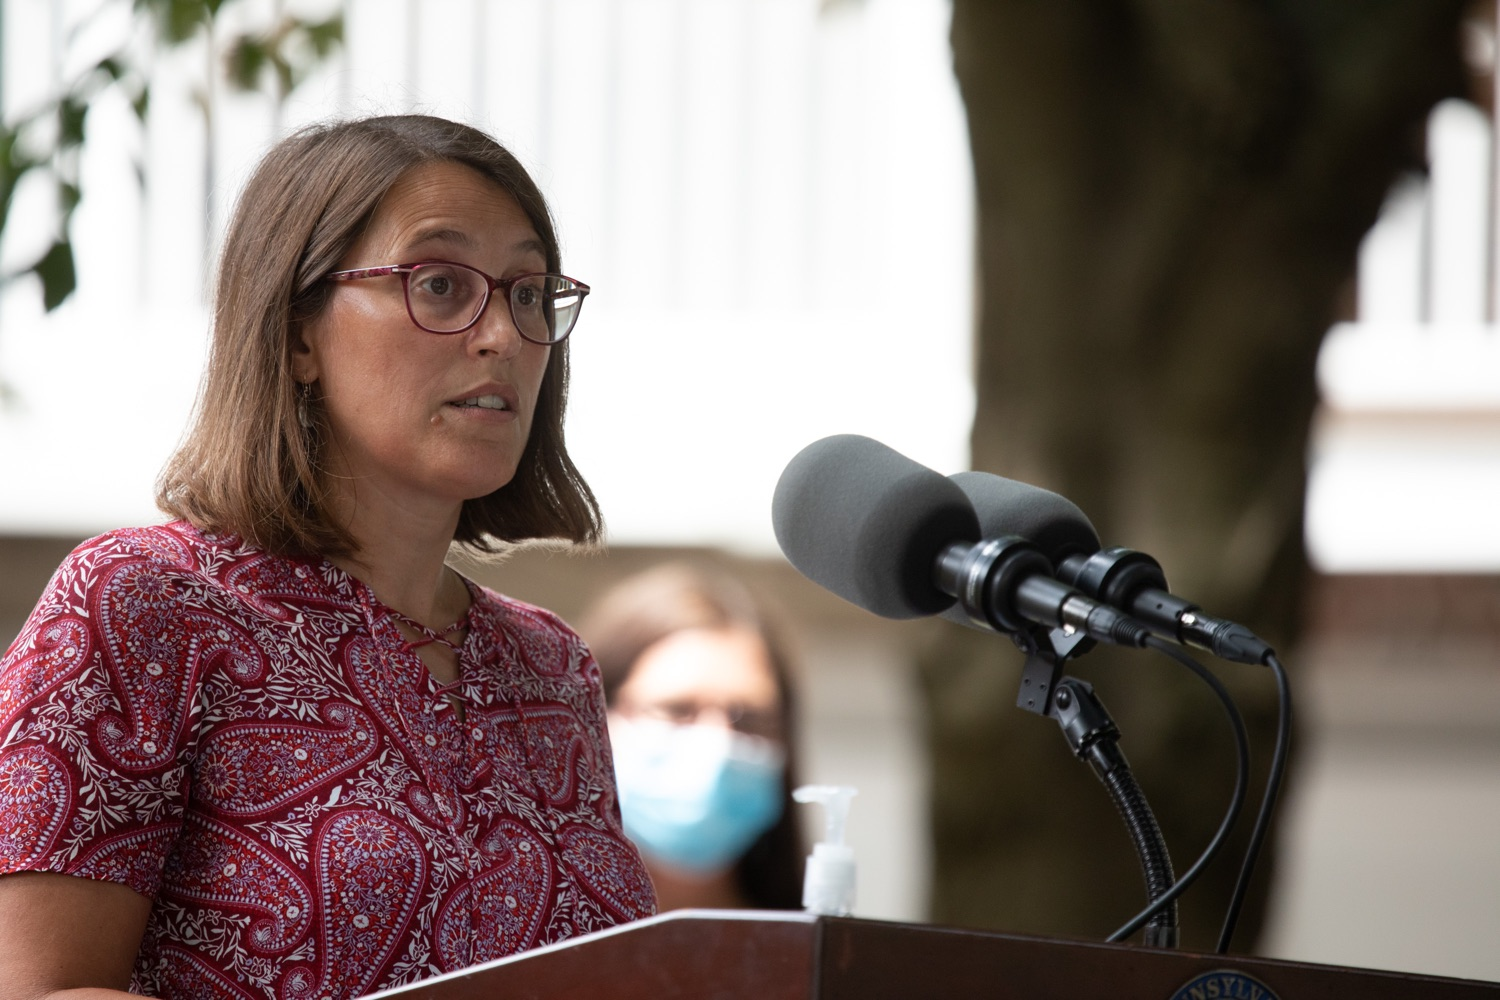 "<a href=""https://filesource.wostreaming.net/commonwealthofpa/photo/18178_GOV_Lancaster_Health_dz__18.jpg"" target=""_blank"">⇣ Download Photo<br></a>Dr. Anne-Marie Derrico, Chief Medical Officer, Lancaster Health Center speaking at the event.Governor Tom Wolf today visited Lancaster Health Center, a federally qualified health center, to thank staff for their work to ensure the communitys most vulnerable receive care during COVID-19 and year-round.  Harrisburg, PA  July 24, 2020"